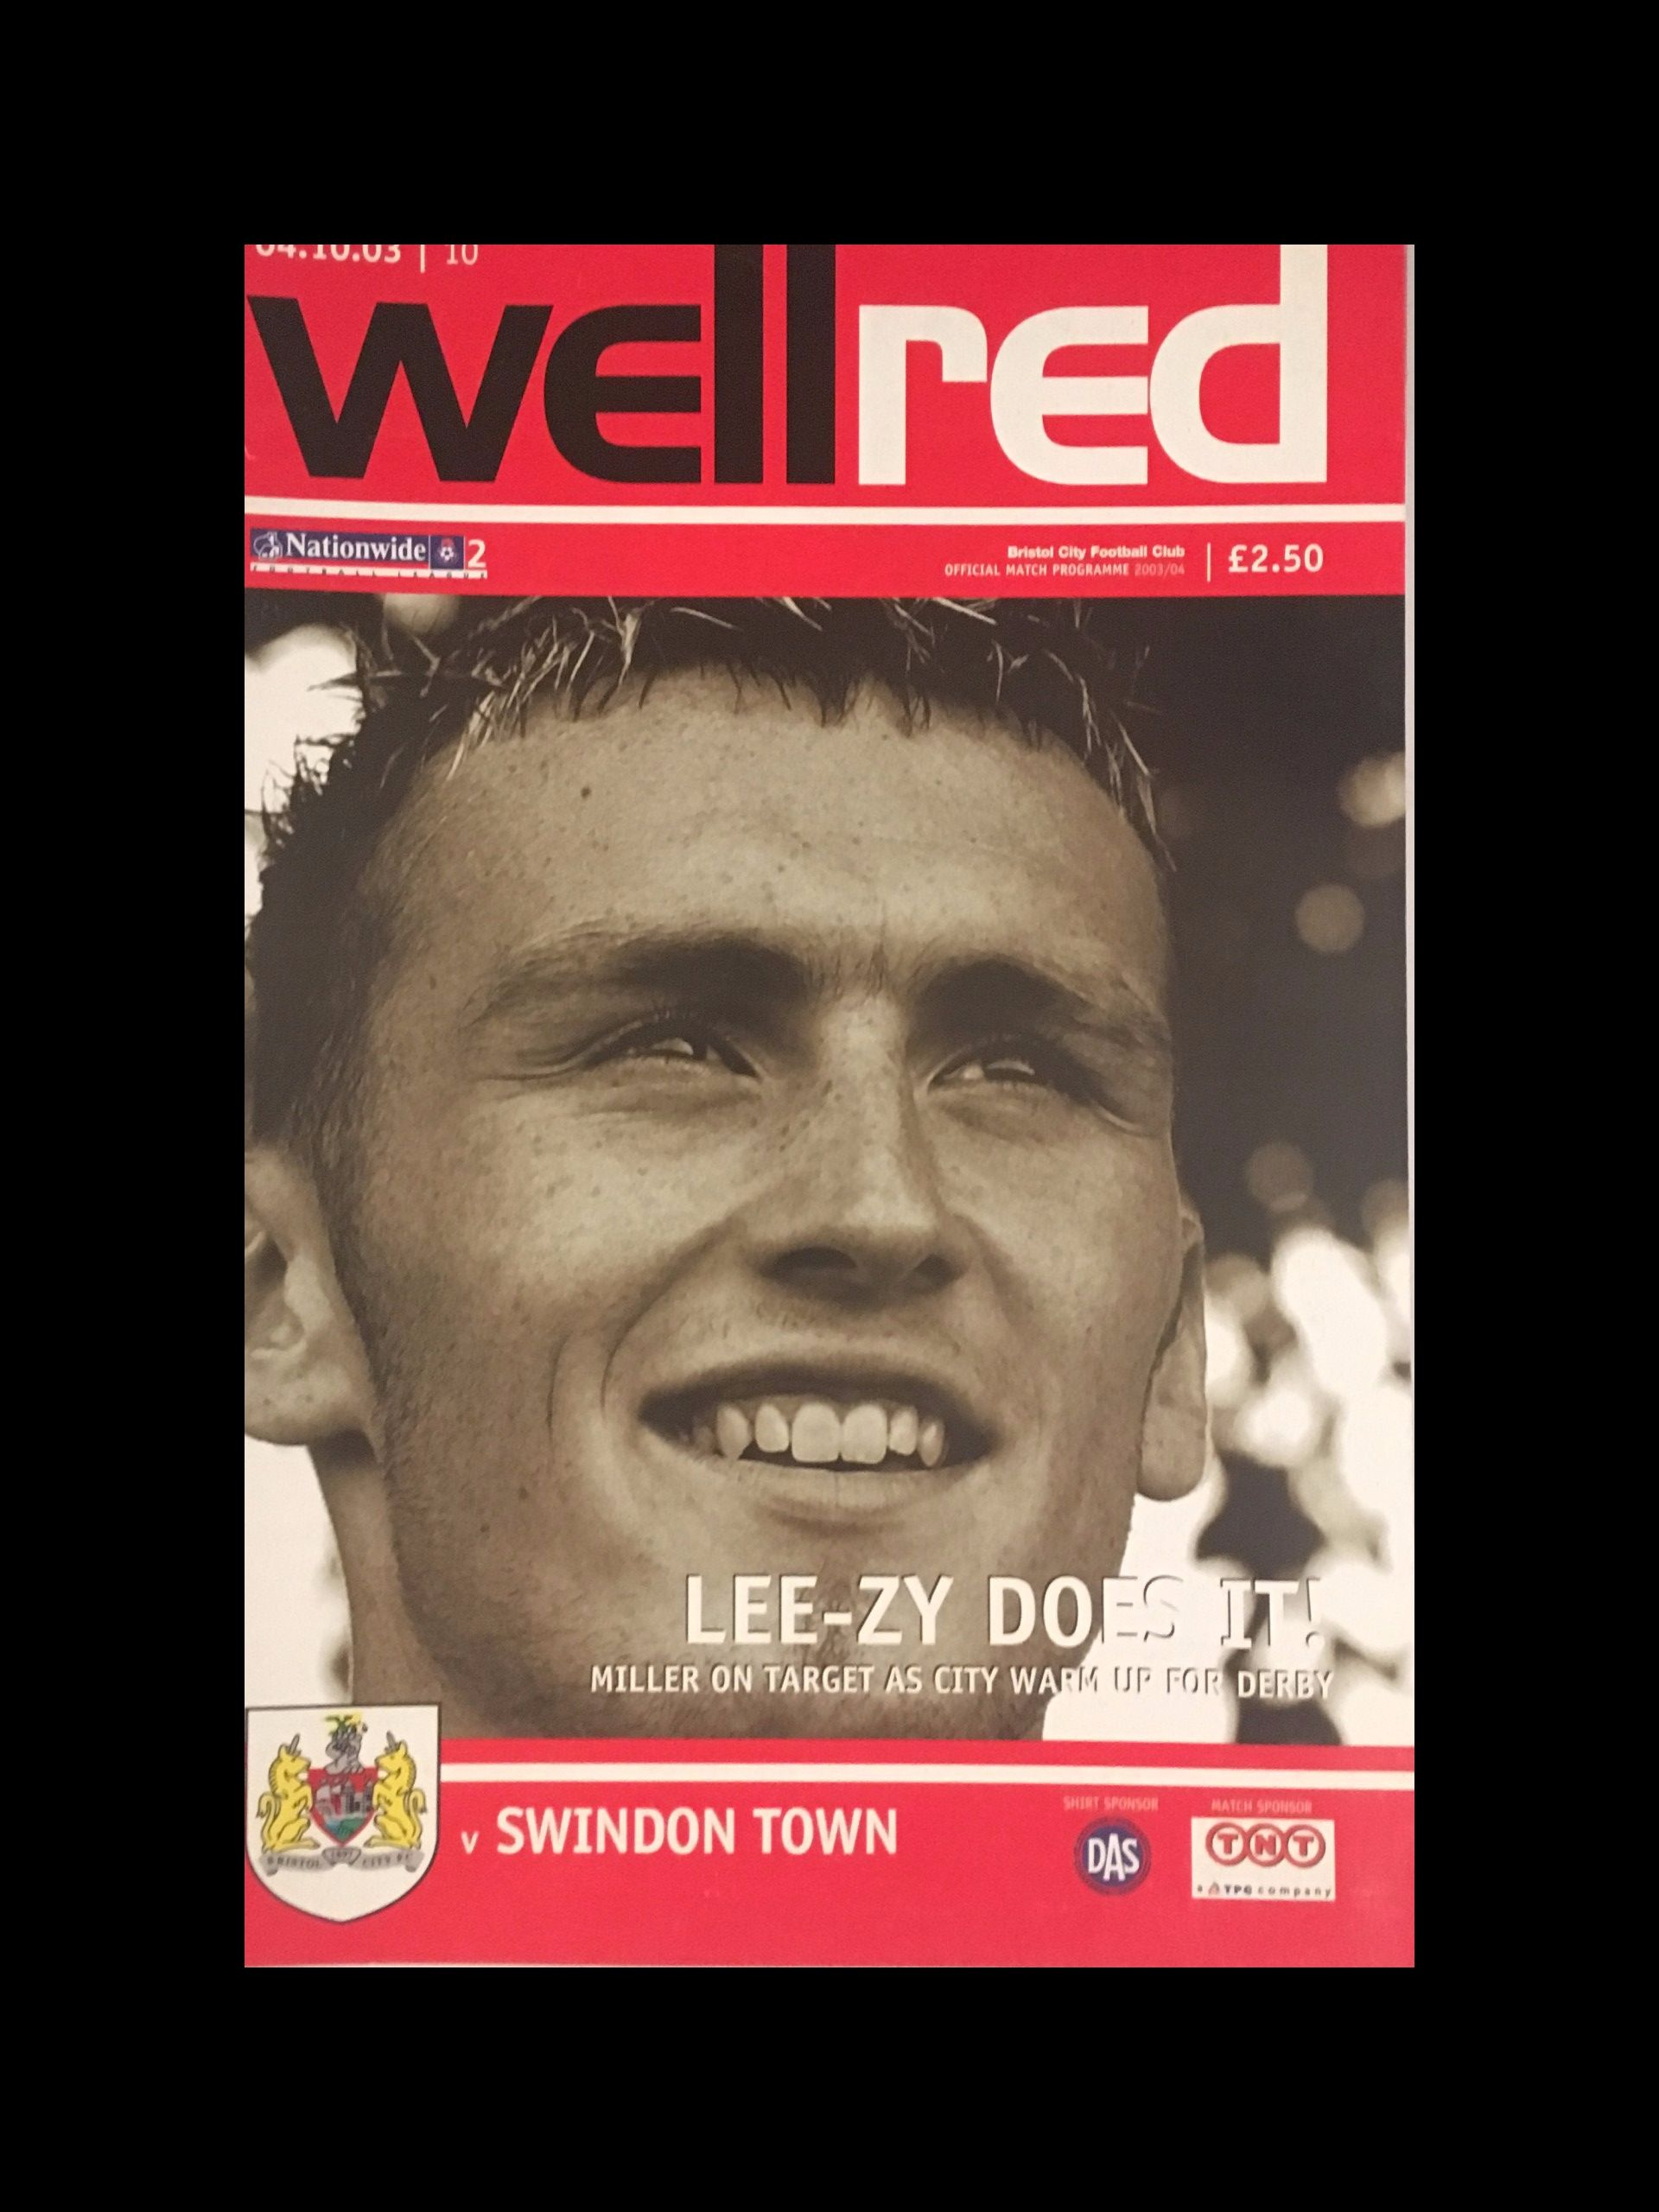 Bristol City v Swindon Town 04-10-2003 Programme